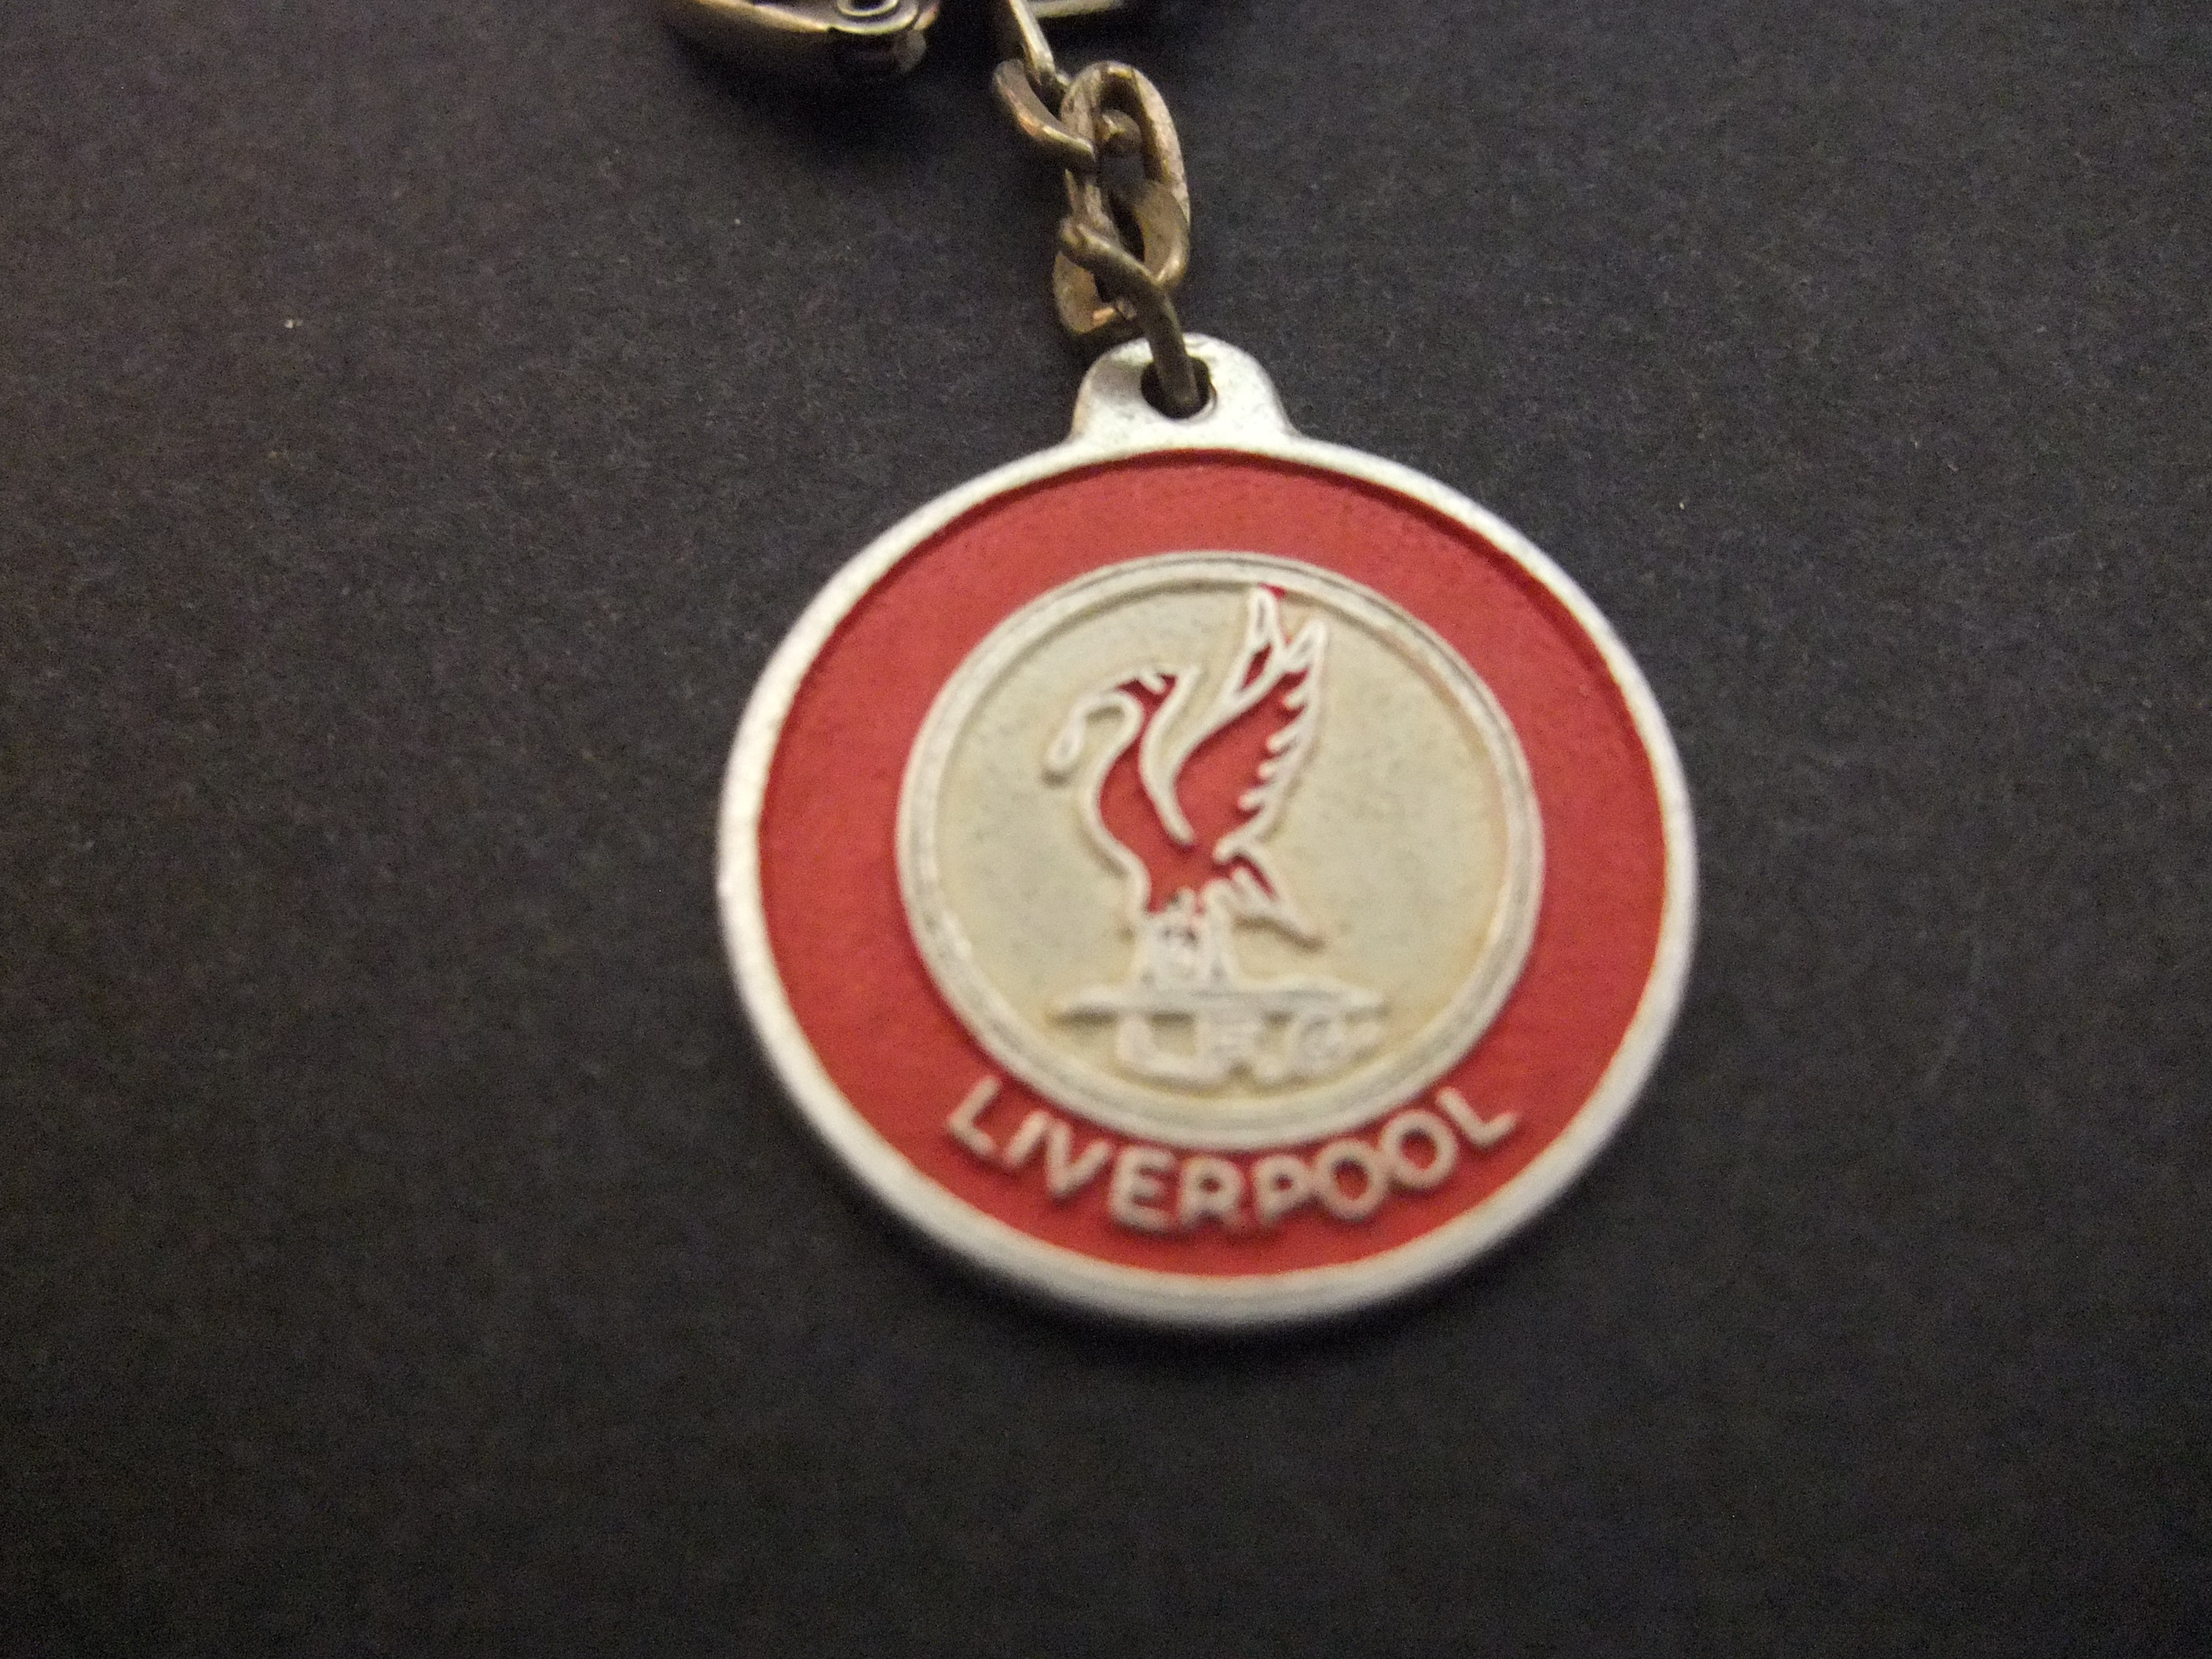 Liverpool F.C. Engelse voetbalclub Anfield-stadion